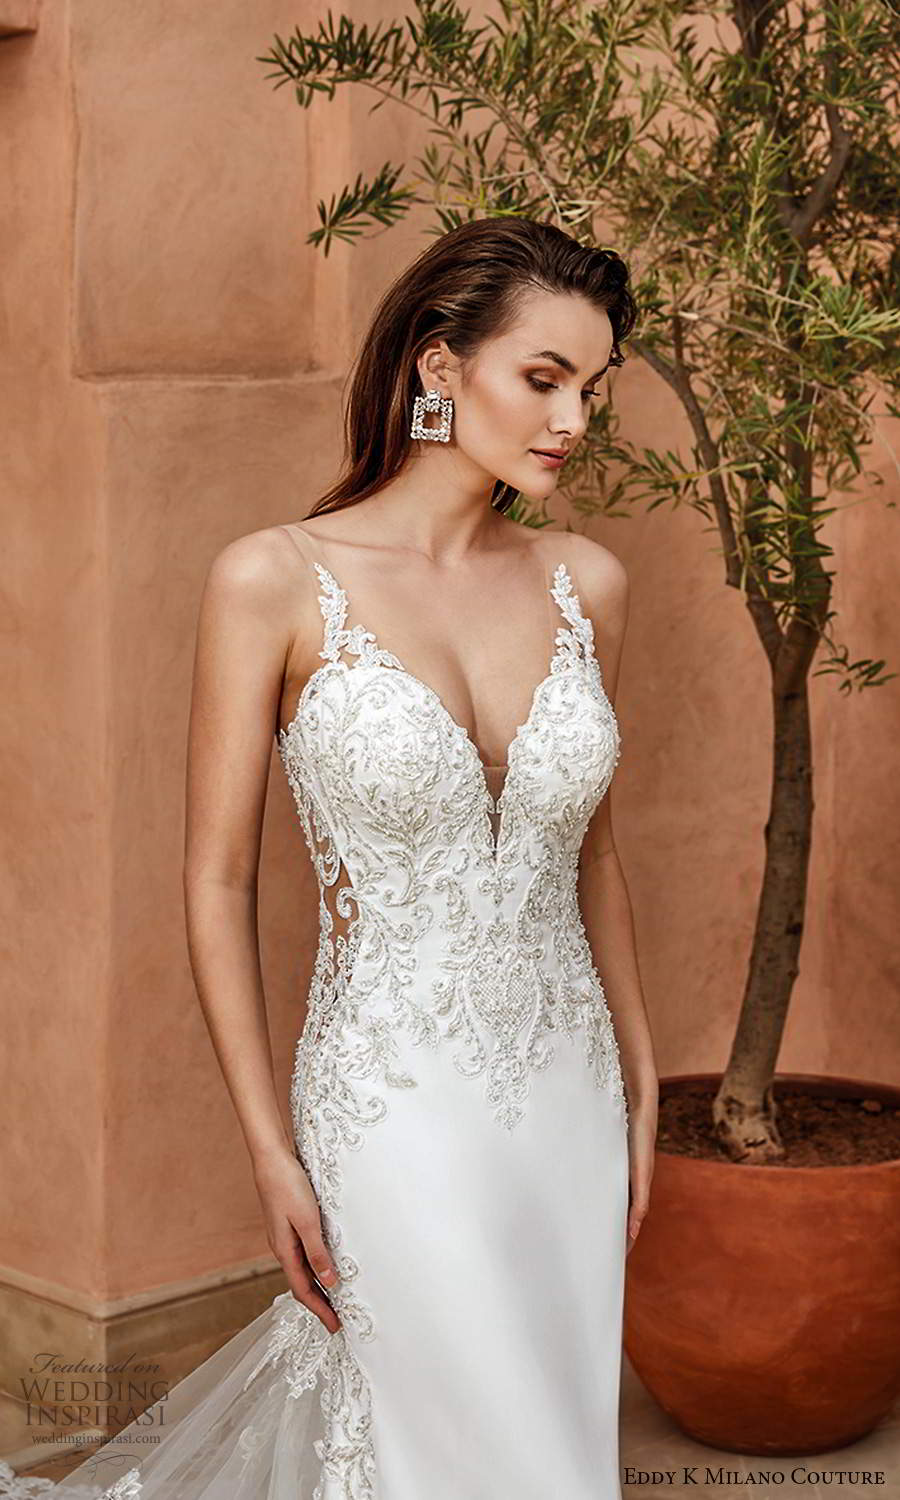 eddy k 2021 milano couture bridal sleeveless straps plunging v neckline heavily embellished bodice sheath wedding dress chapel train (13) zv